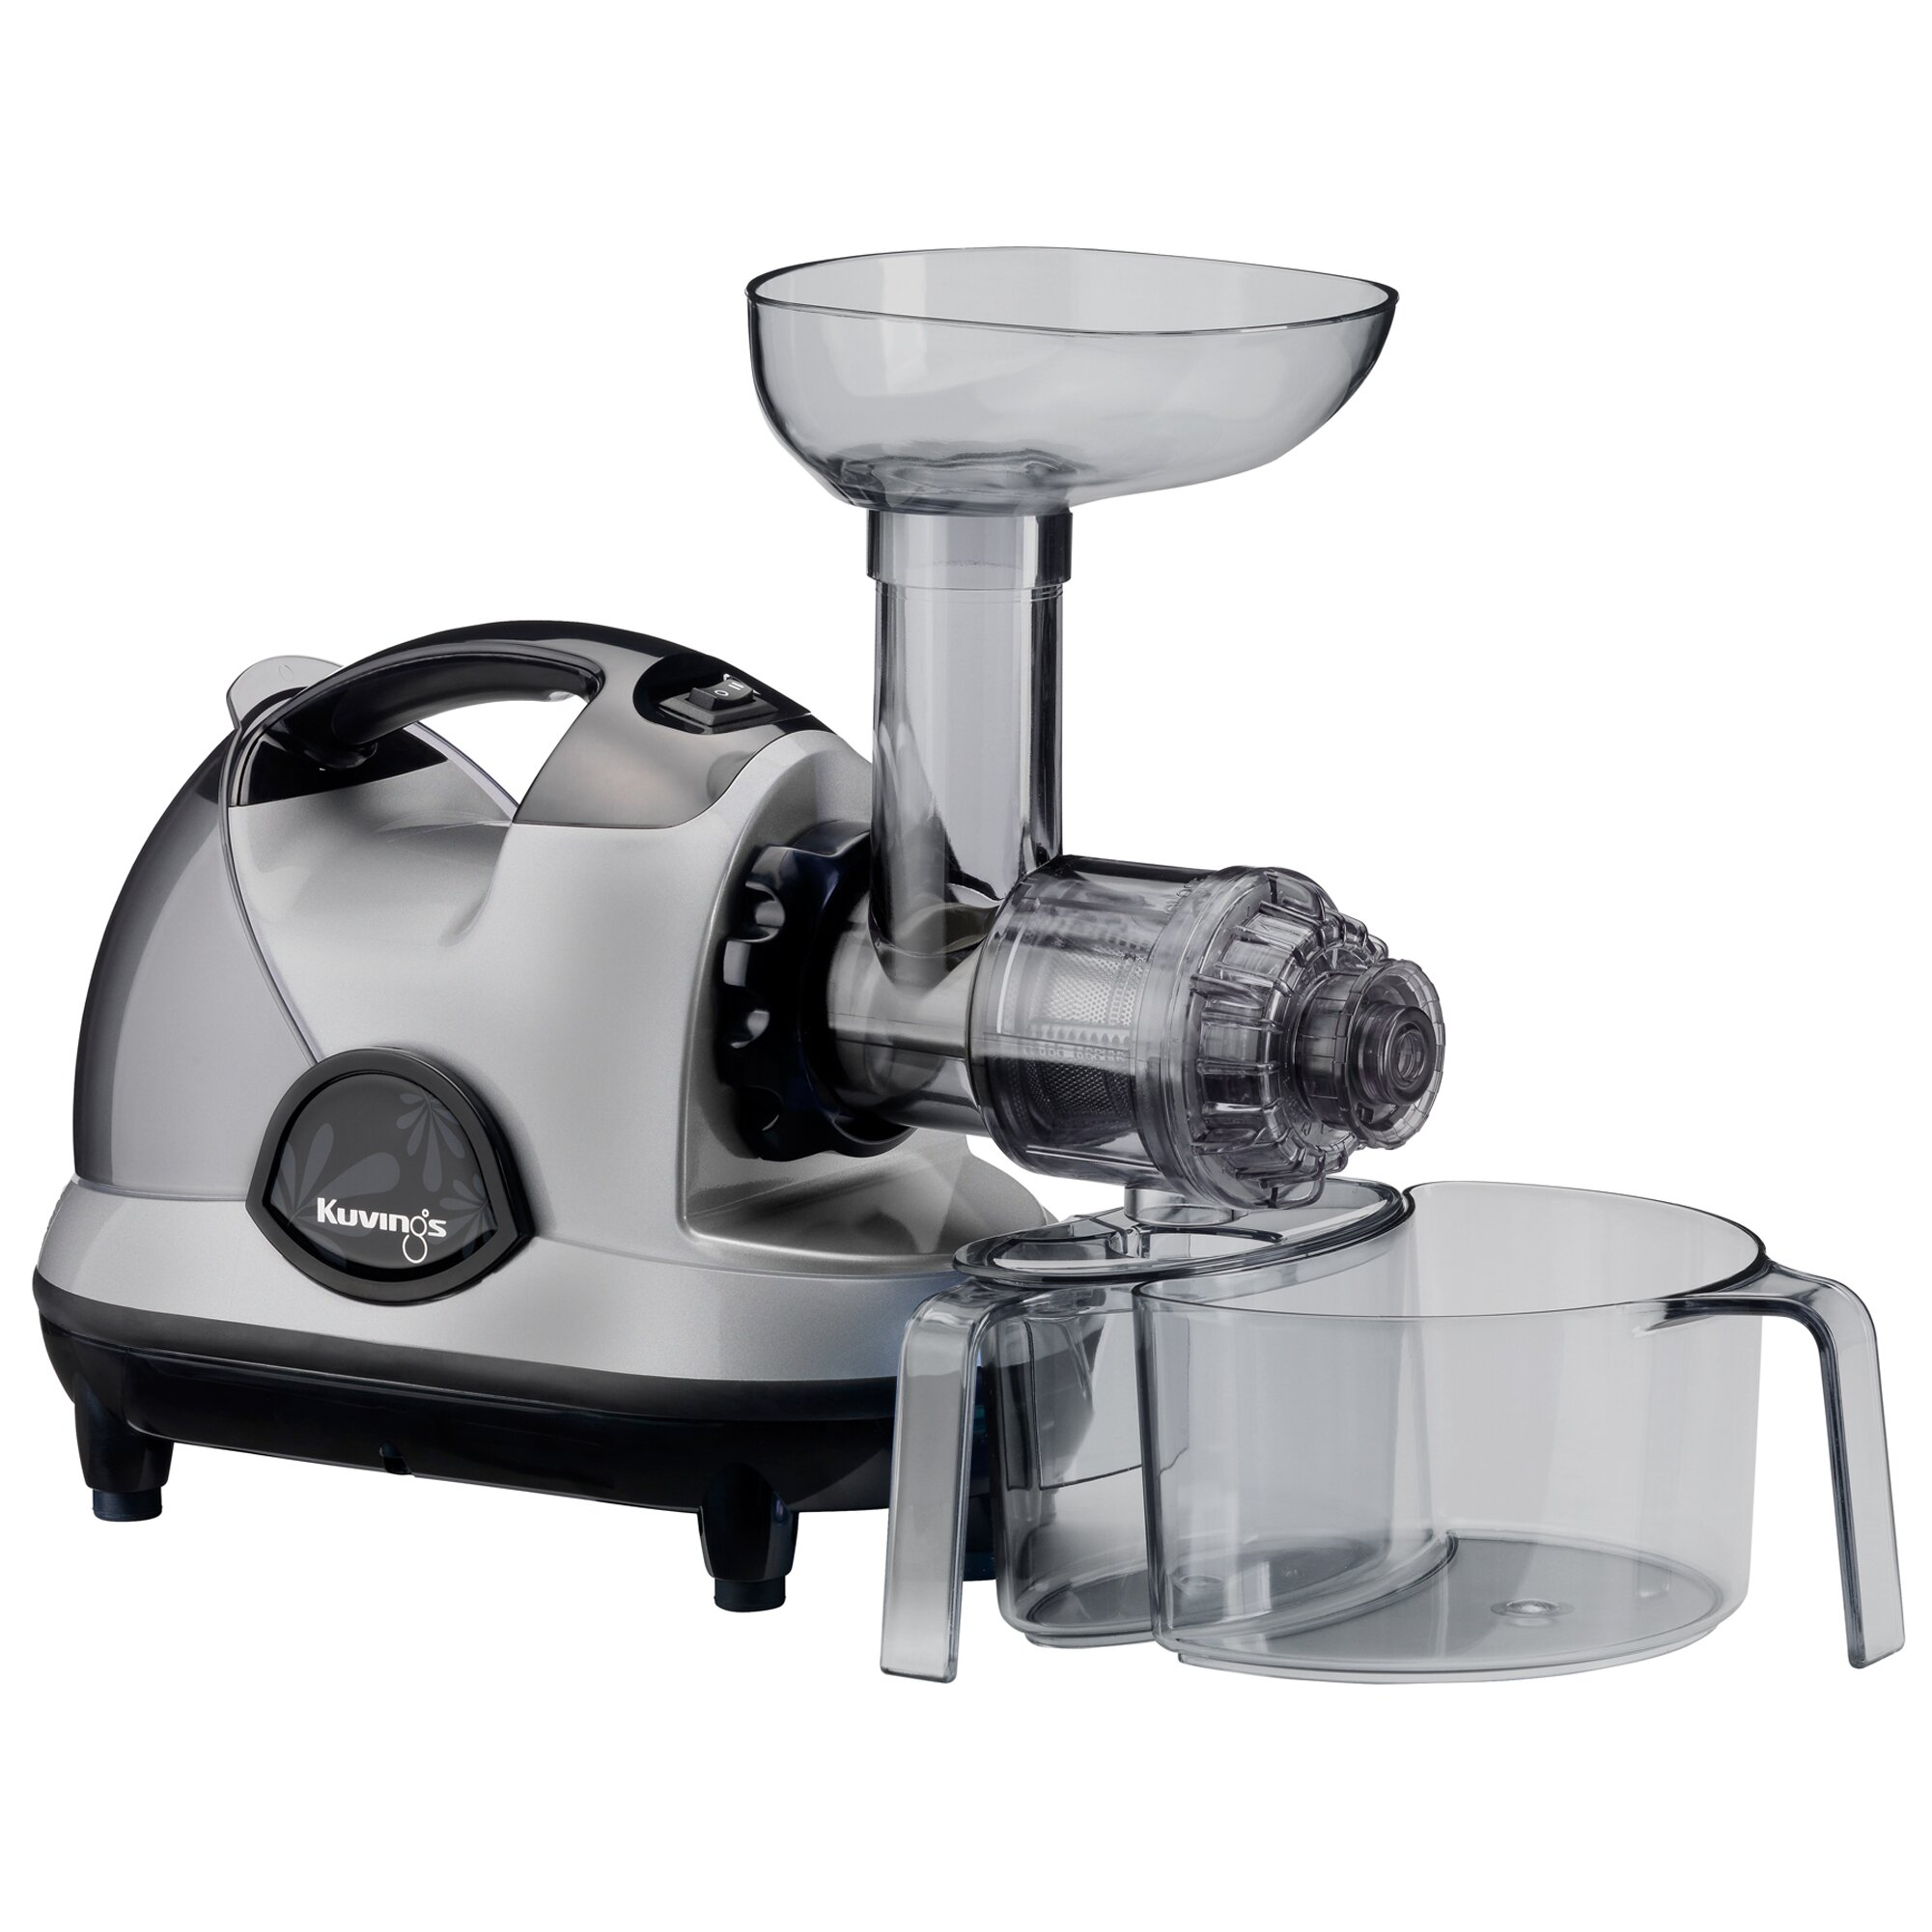 Kuvings Slow Juicer Reviews : KUvINGS Multi-Purpose Slow Juicer & Reviews Wayfair